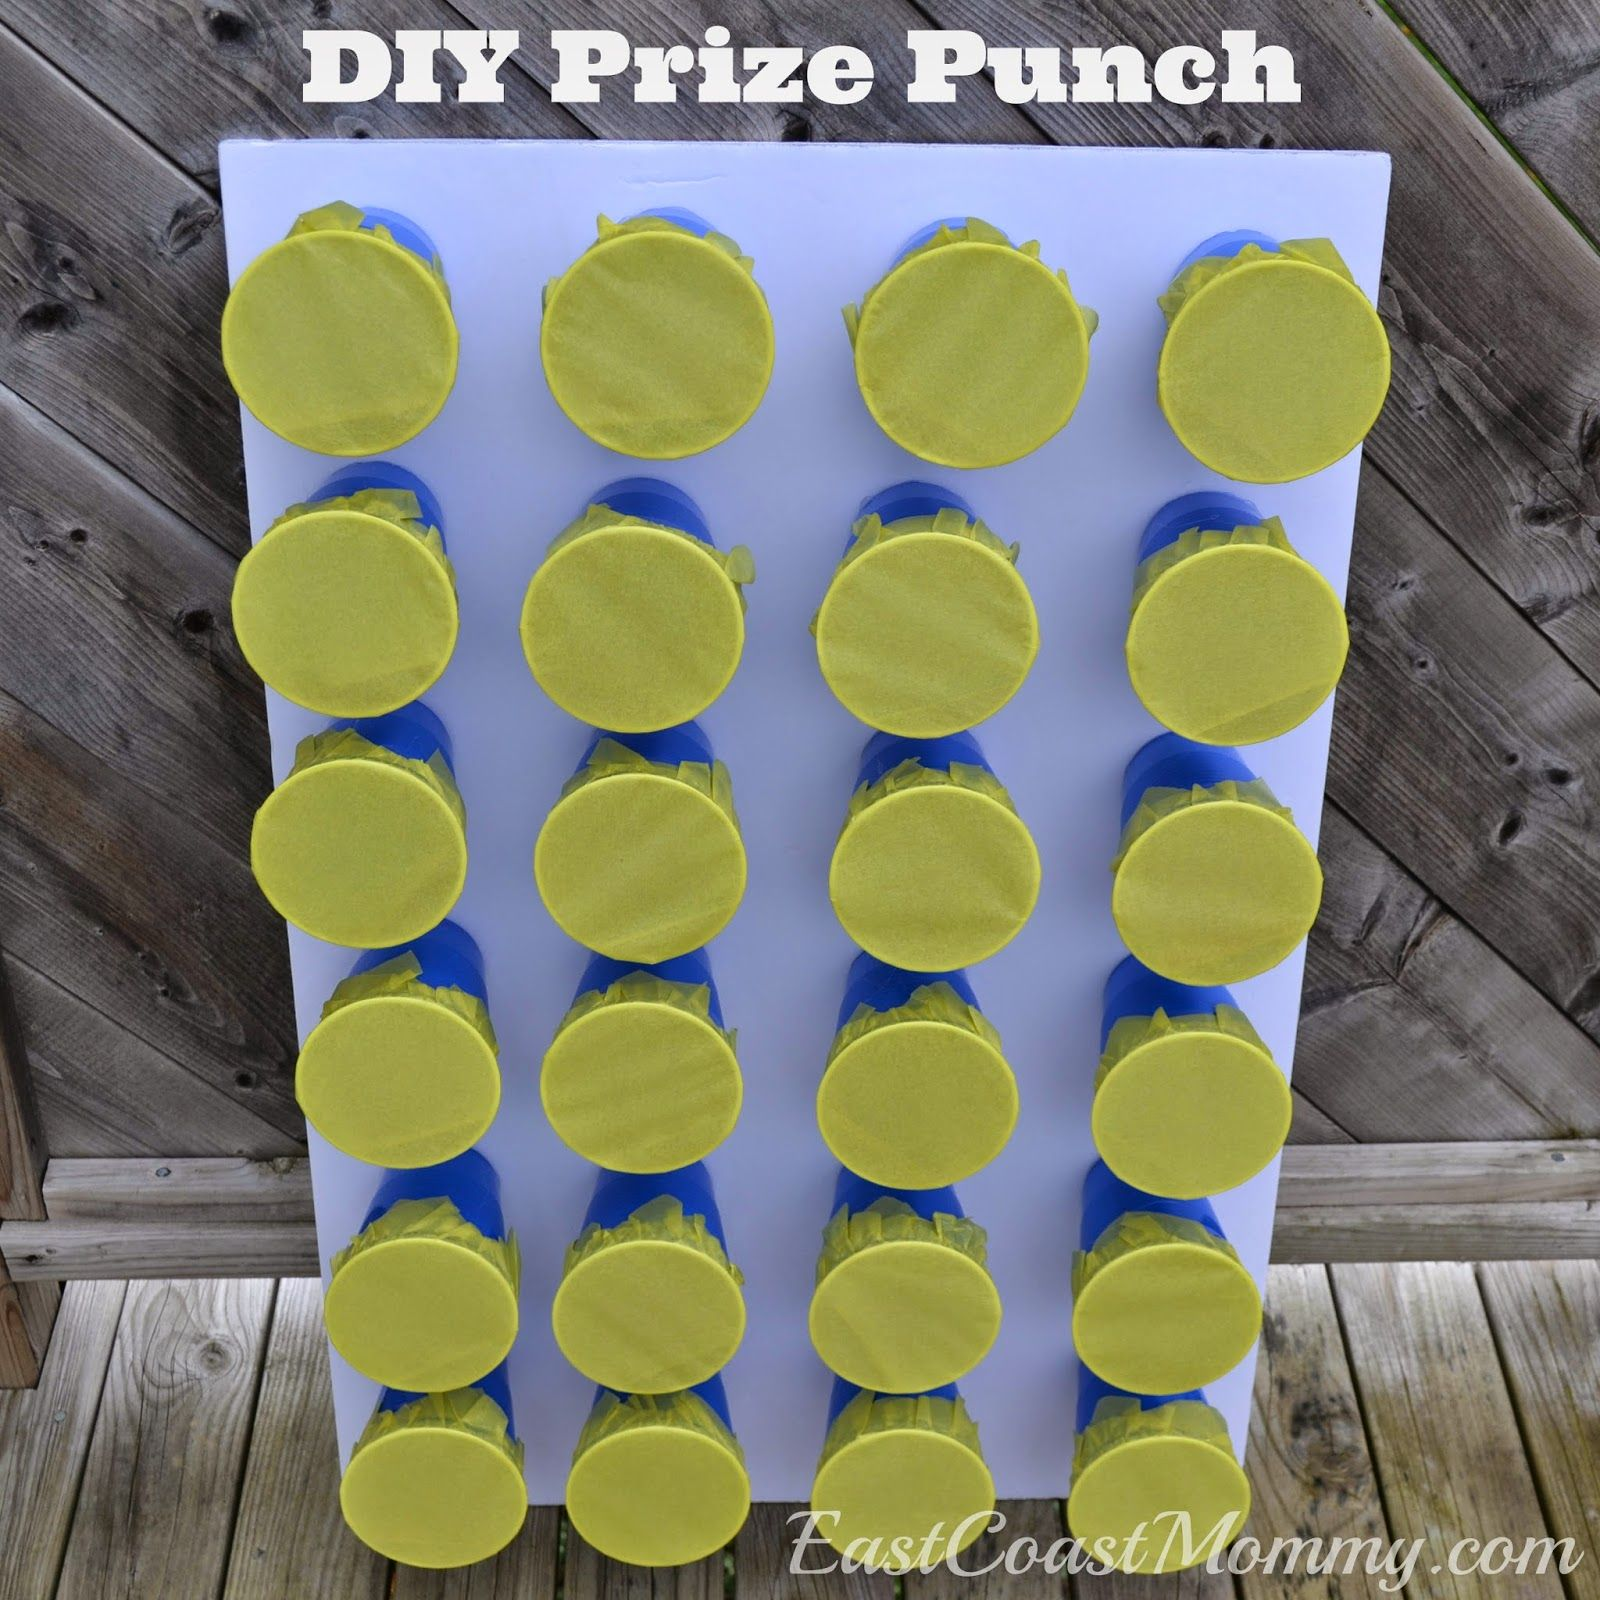 DIY Prize Punch | Store supply and Dollar stores